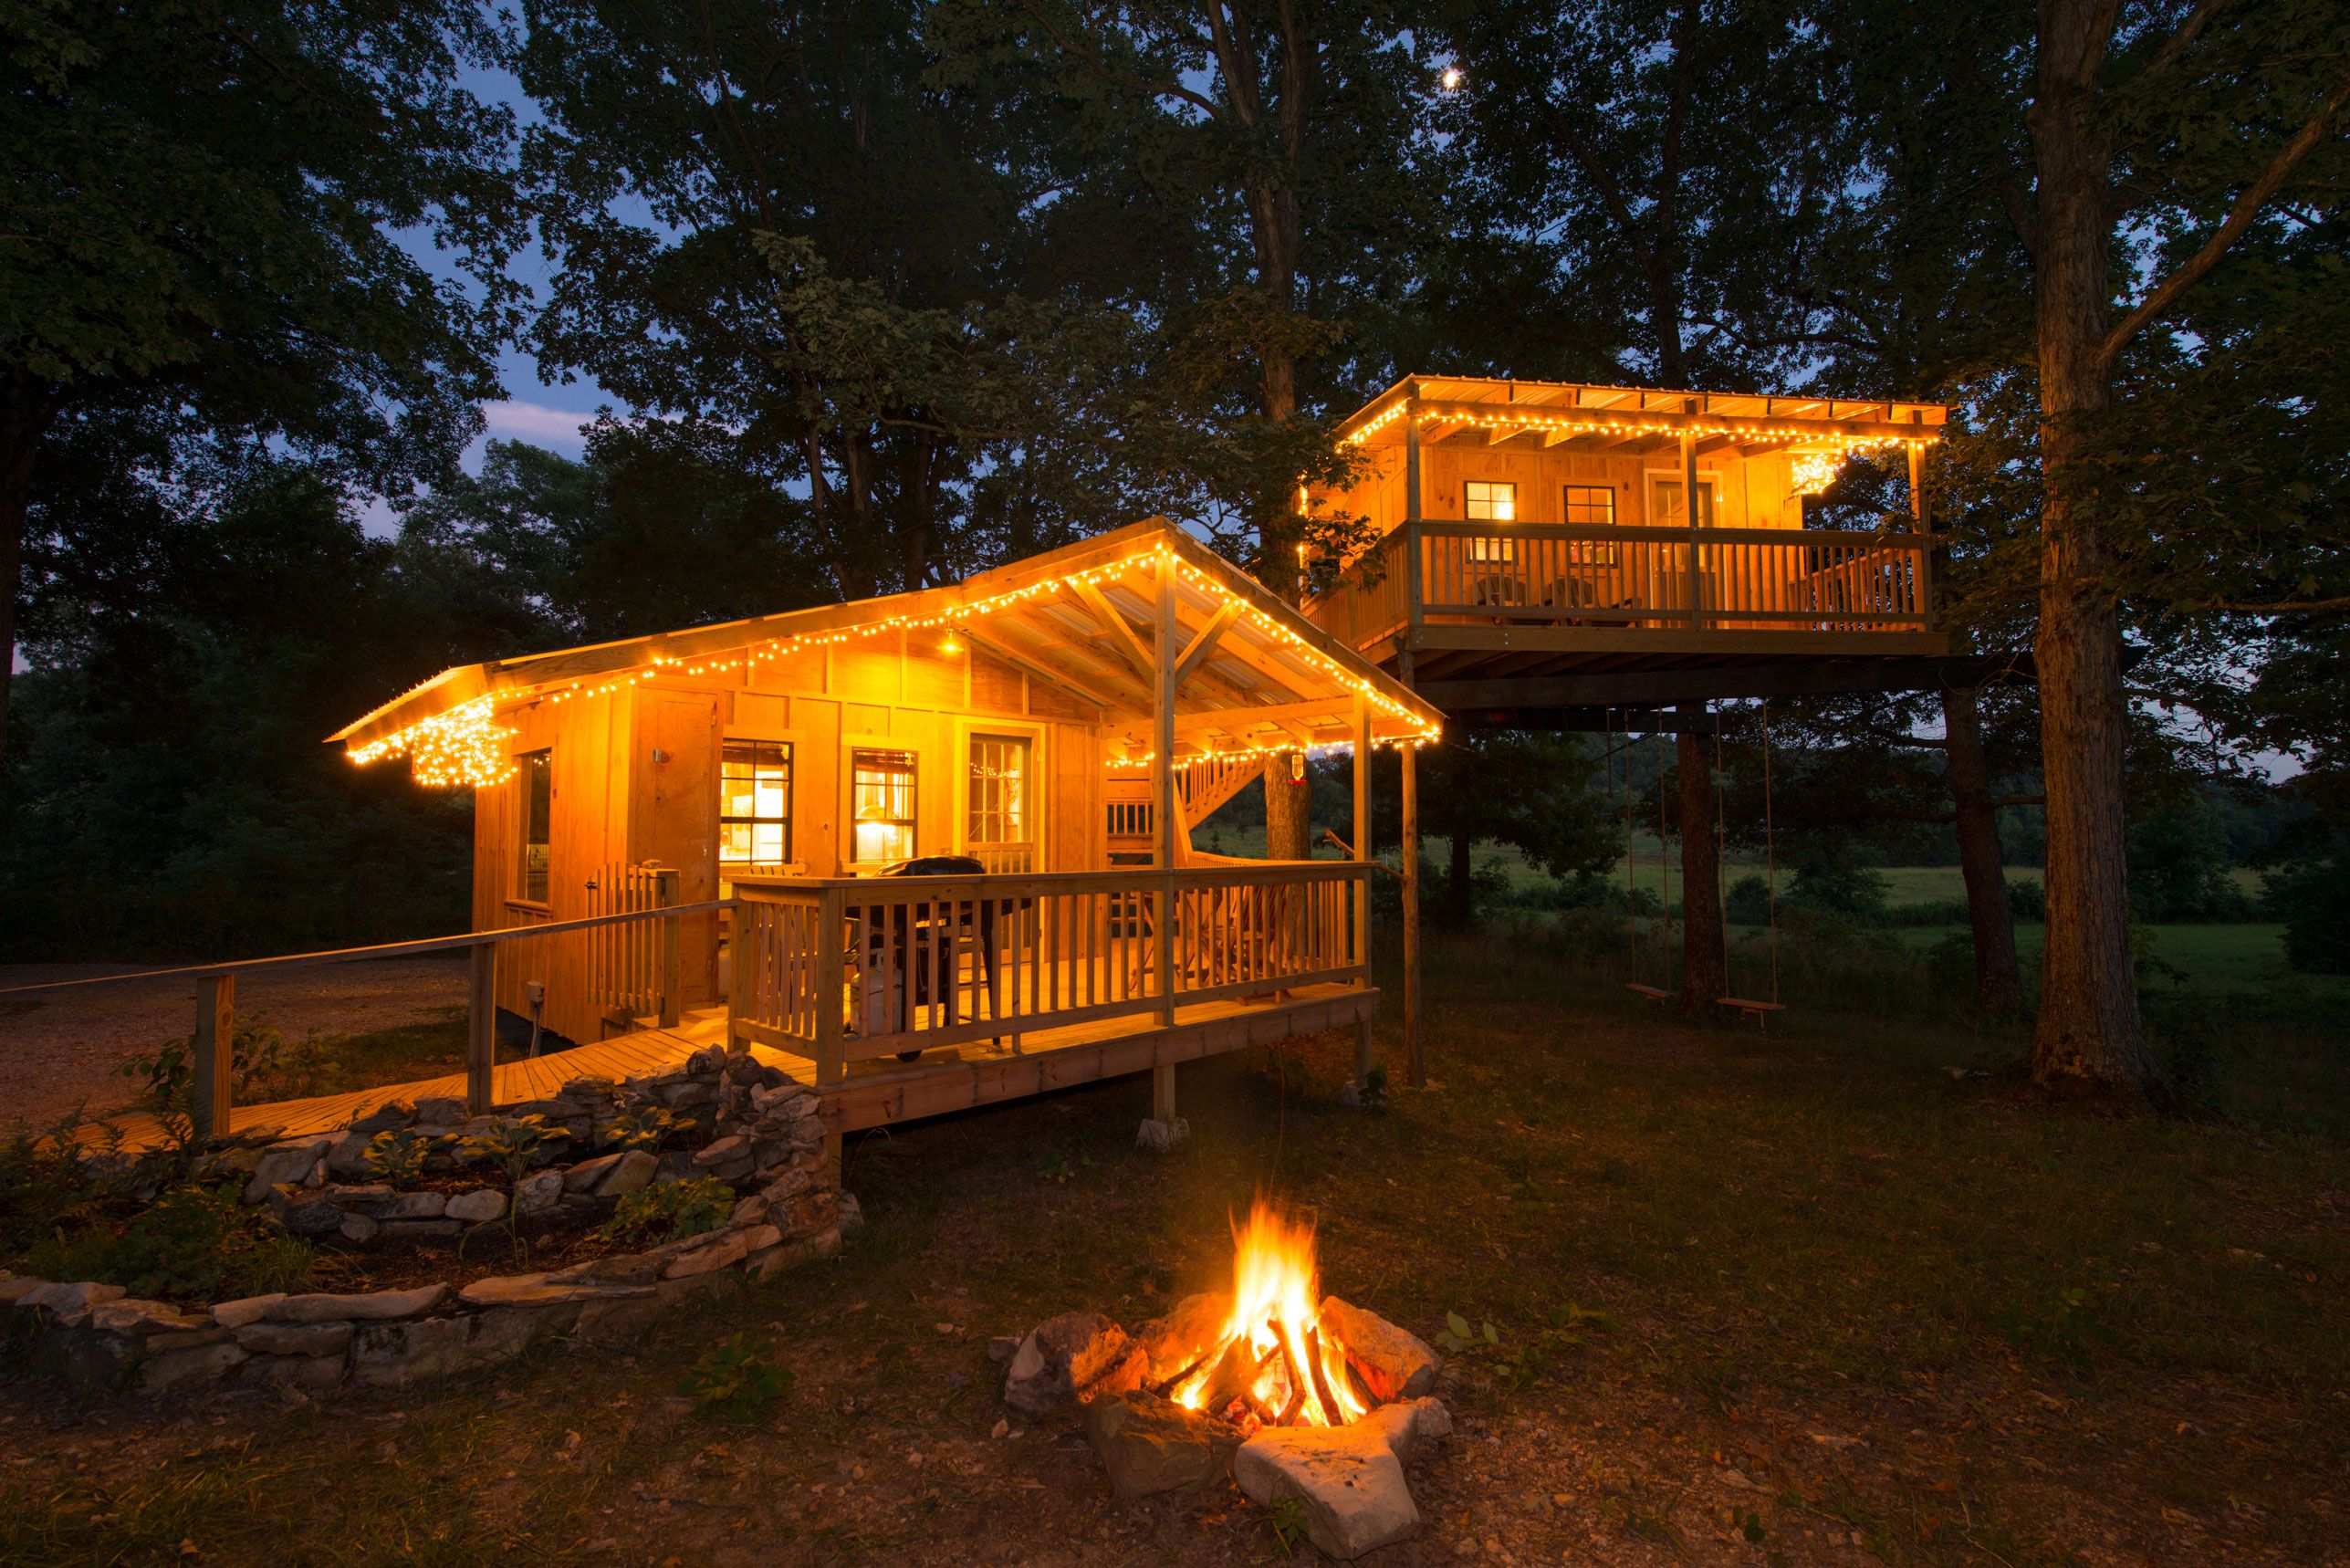 a come country can hotels romantic log be resorts pin clean rustic so charm in relax pinterest cabin arkansas cabins and